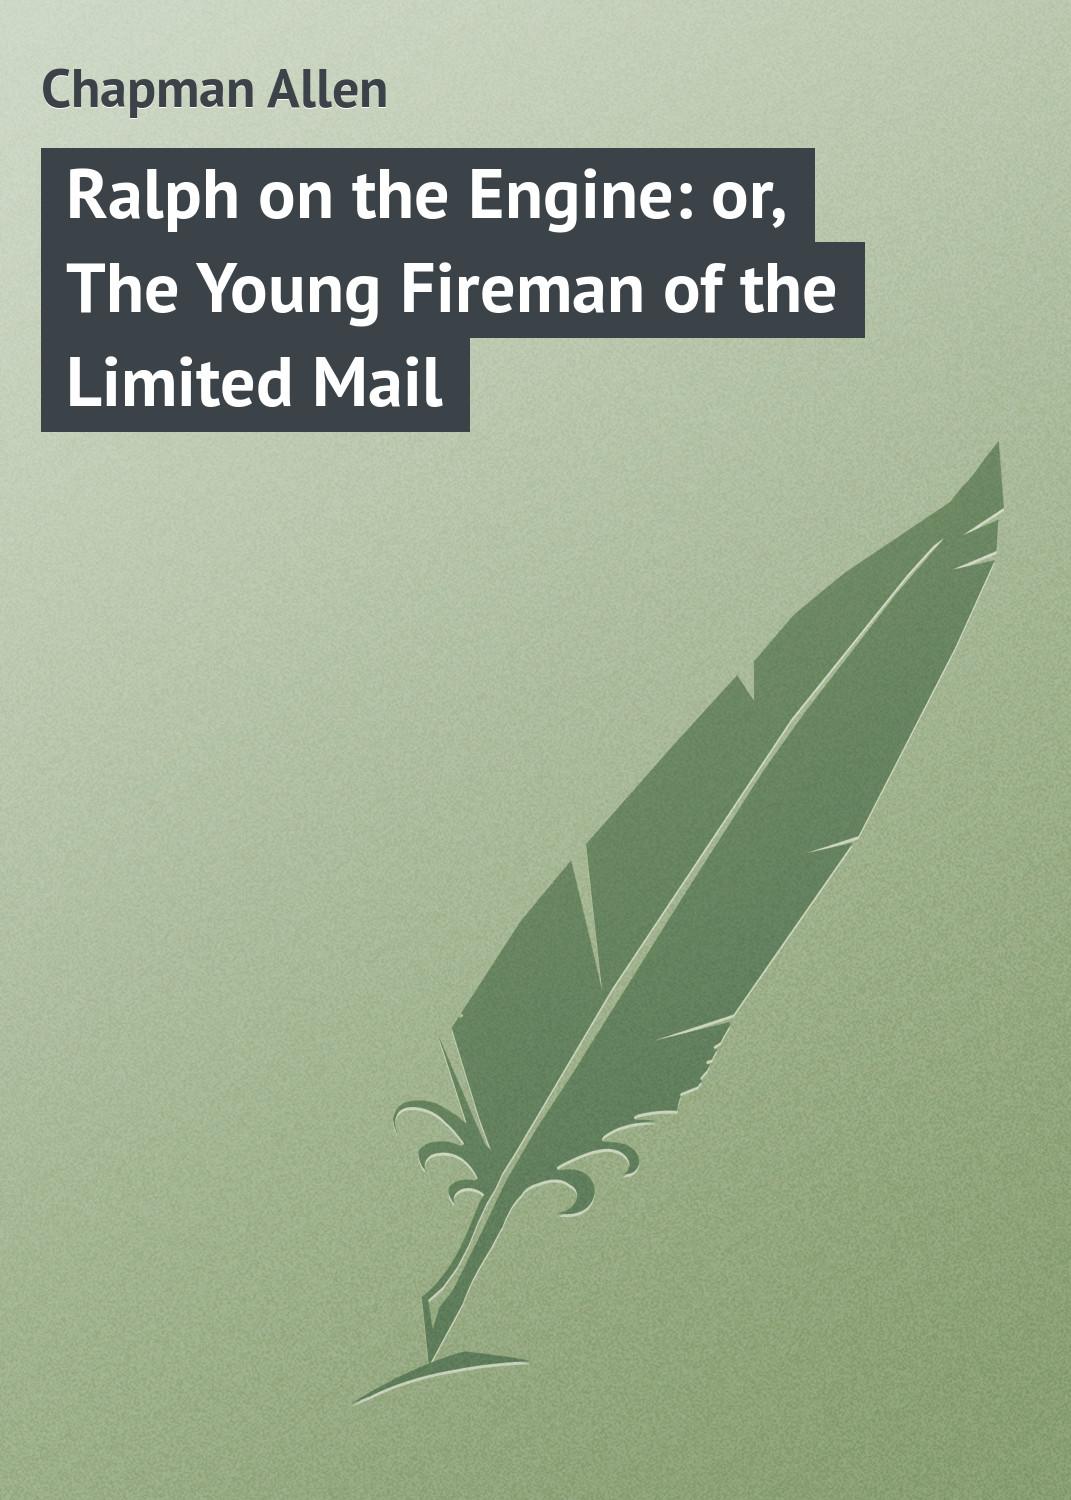 купить Chapman Allen Ralph on the Engine: or, The Young Fireman of the Limited Mail по цене 0 рублей